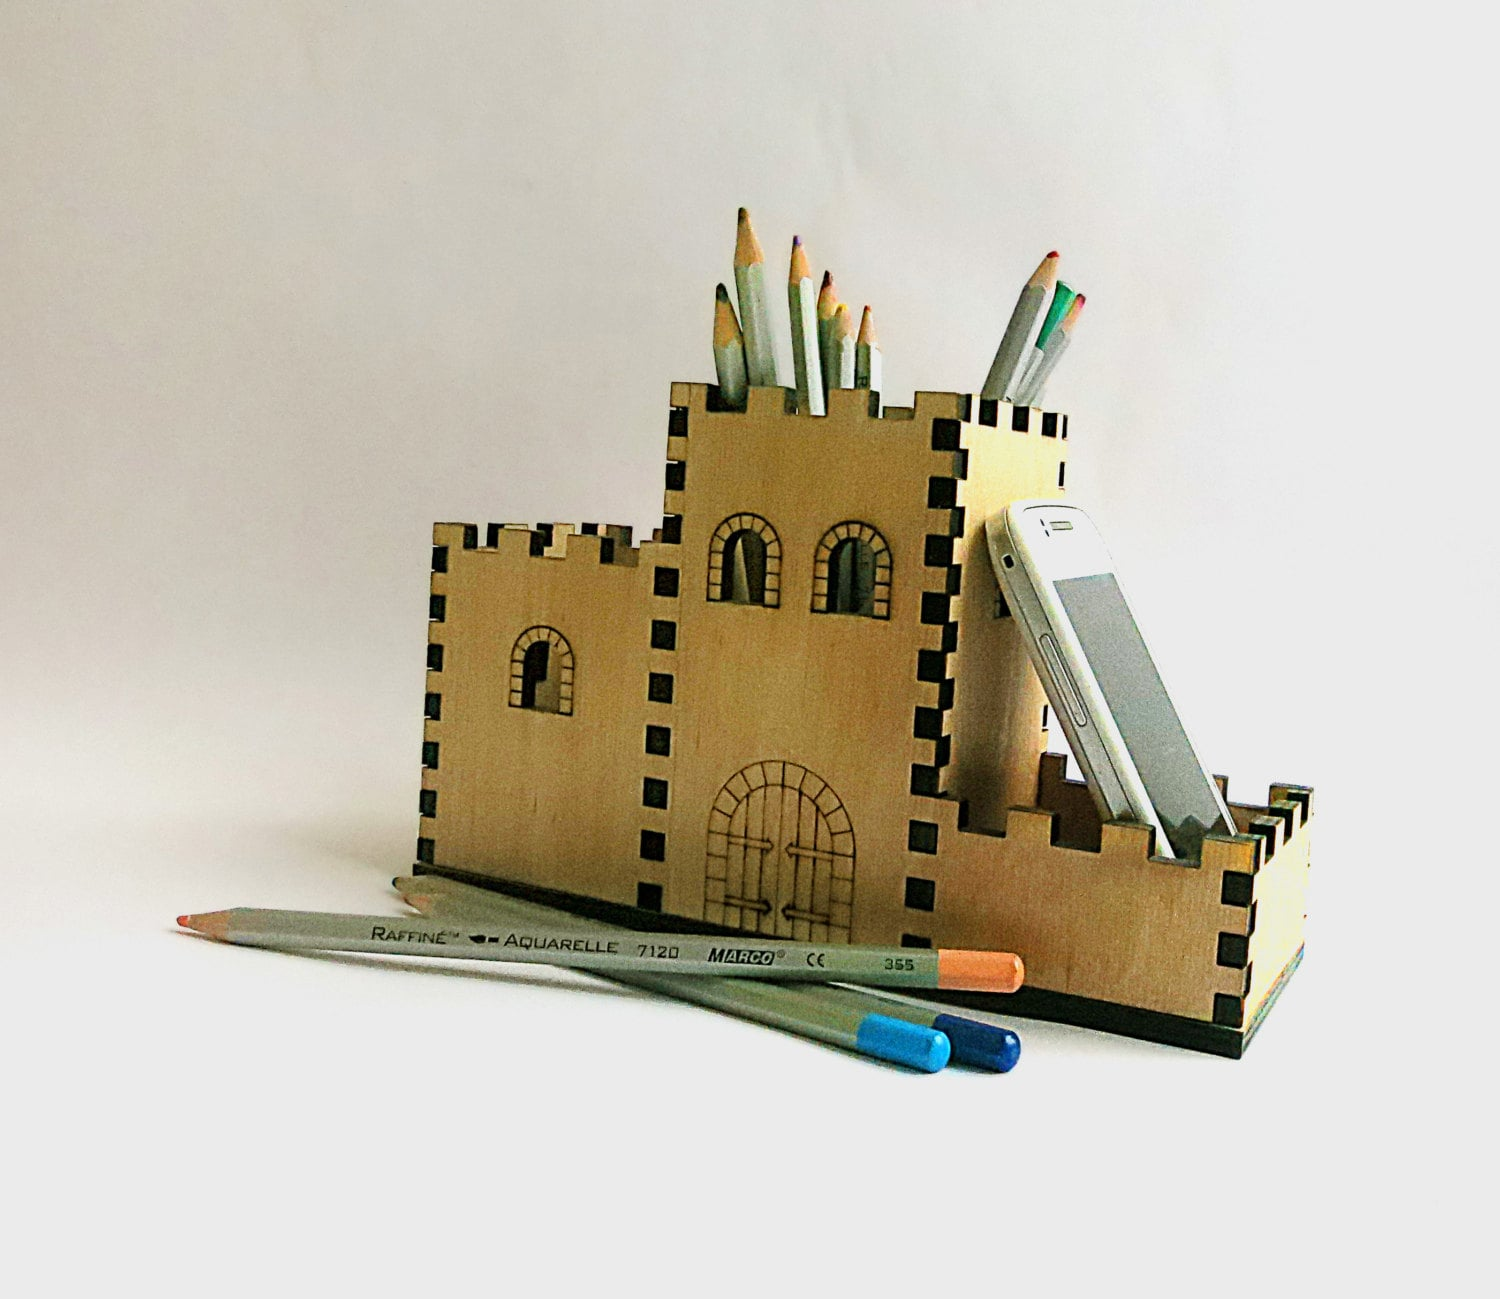 Unique Pen Holder Wooden Pencil Holder Amp Phone Holder Small Castle By Oladiclock